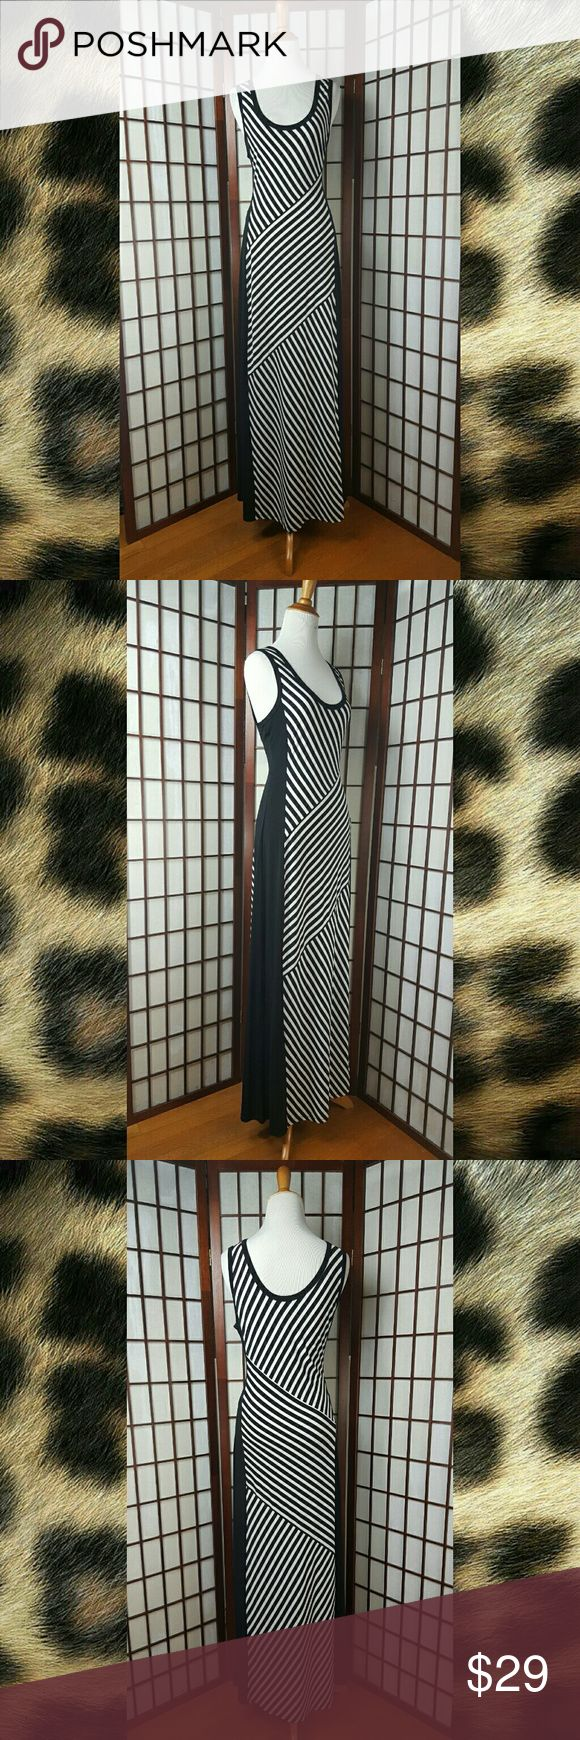 "Black and White CALVIN KLEIN Maxi Dress Size M Pre-owned excellent condition  Calvin Klein size M Sleeveless sleeve style Maxi Dress Striped pattern Black and white Made of polyester and spandex  Nice dress   MEASUREMENTS Approximate  Pit to pit 18"" Shoulder to hem 58"" Waist 32"" Calvin Klein Dresses Maxi"